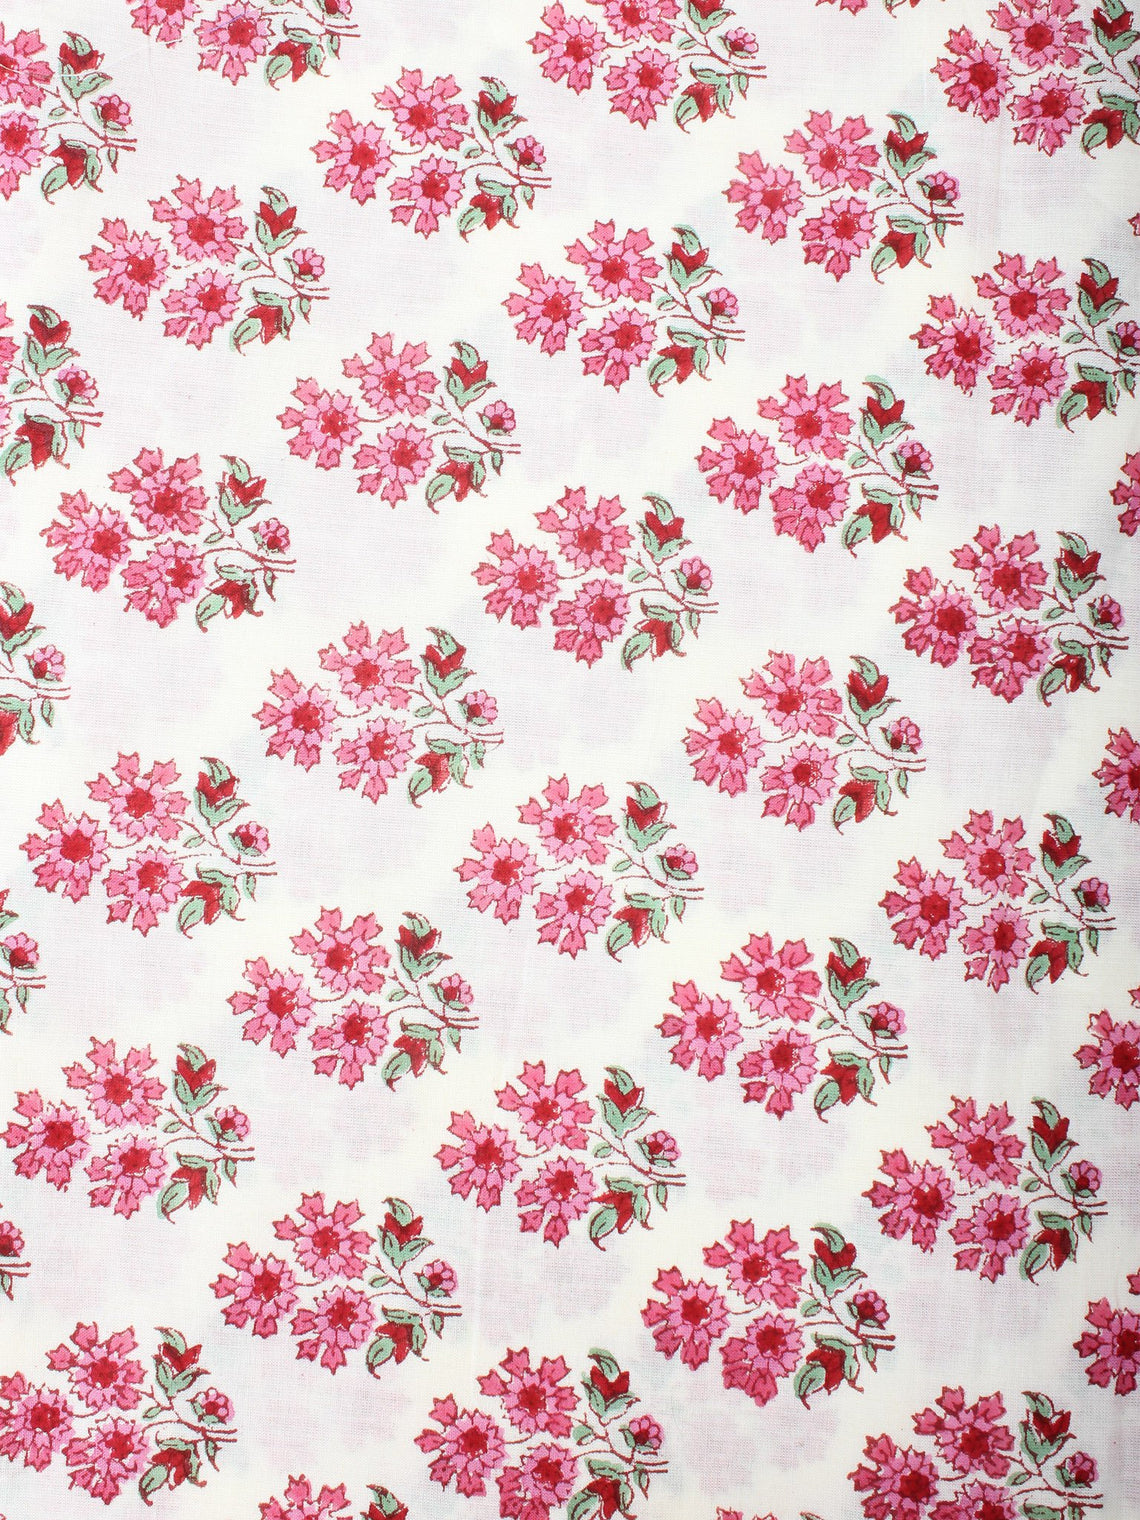 Off White Pink Hand Block Printed Cotton Cambric Fabric Per Meter - F0916406